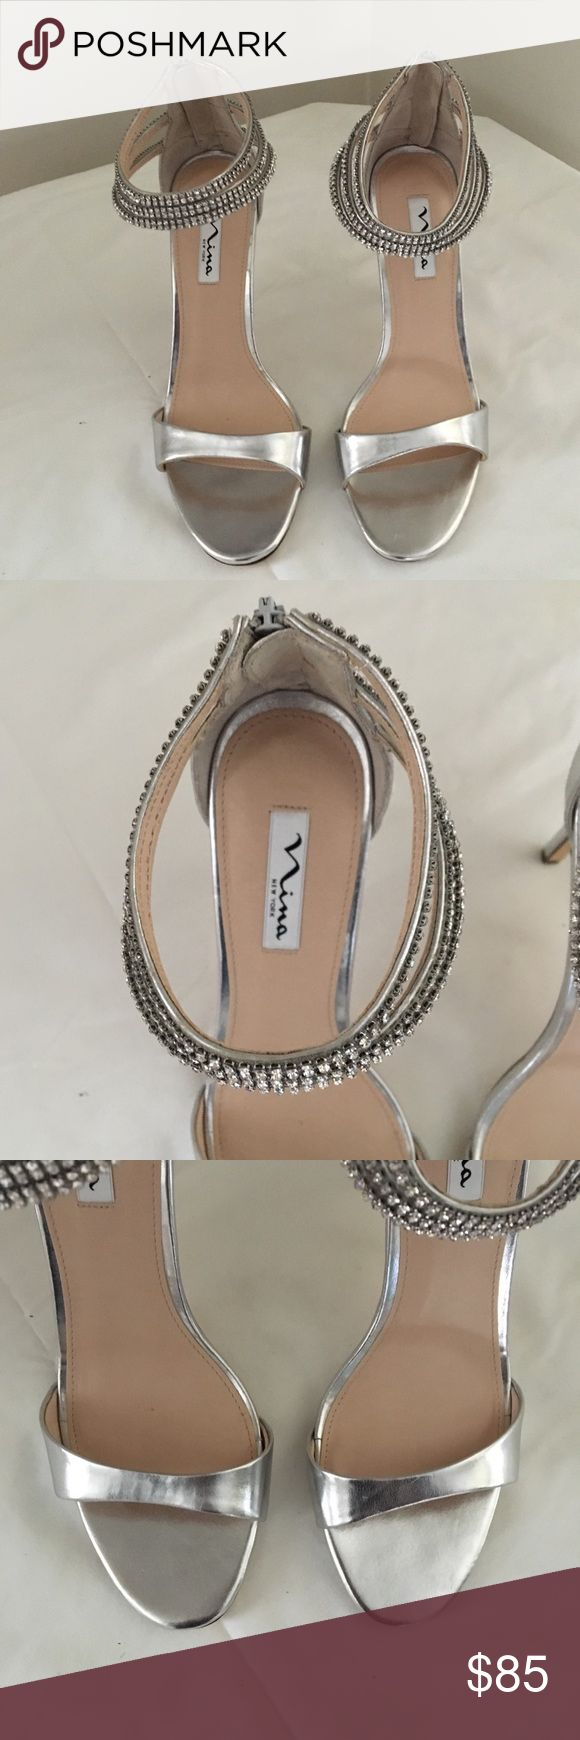 """Nina Women's Catessa Dress Sandal Beautiful silver sandals with silver ankle straps. The perfect shoes for any occasion. Size 10. Leather sole. Heel measures approximately 4"""". Elegant dress sandal featuring zip-up heel cup with trio of rhinestone ankle straps. Nina Shoes Sandals"""